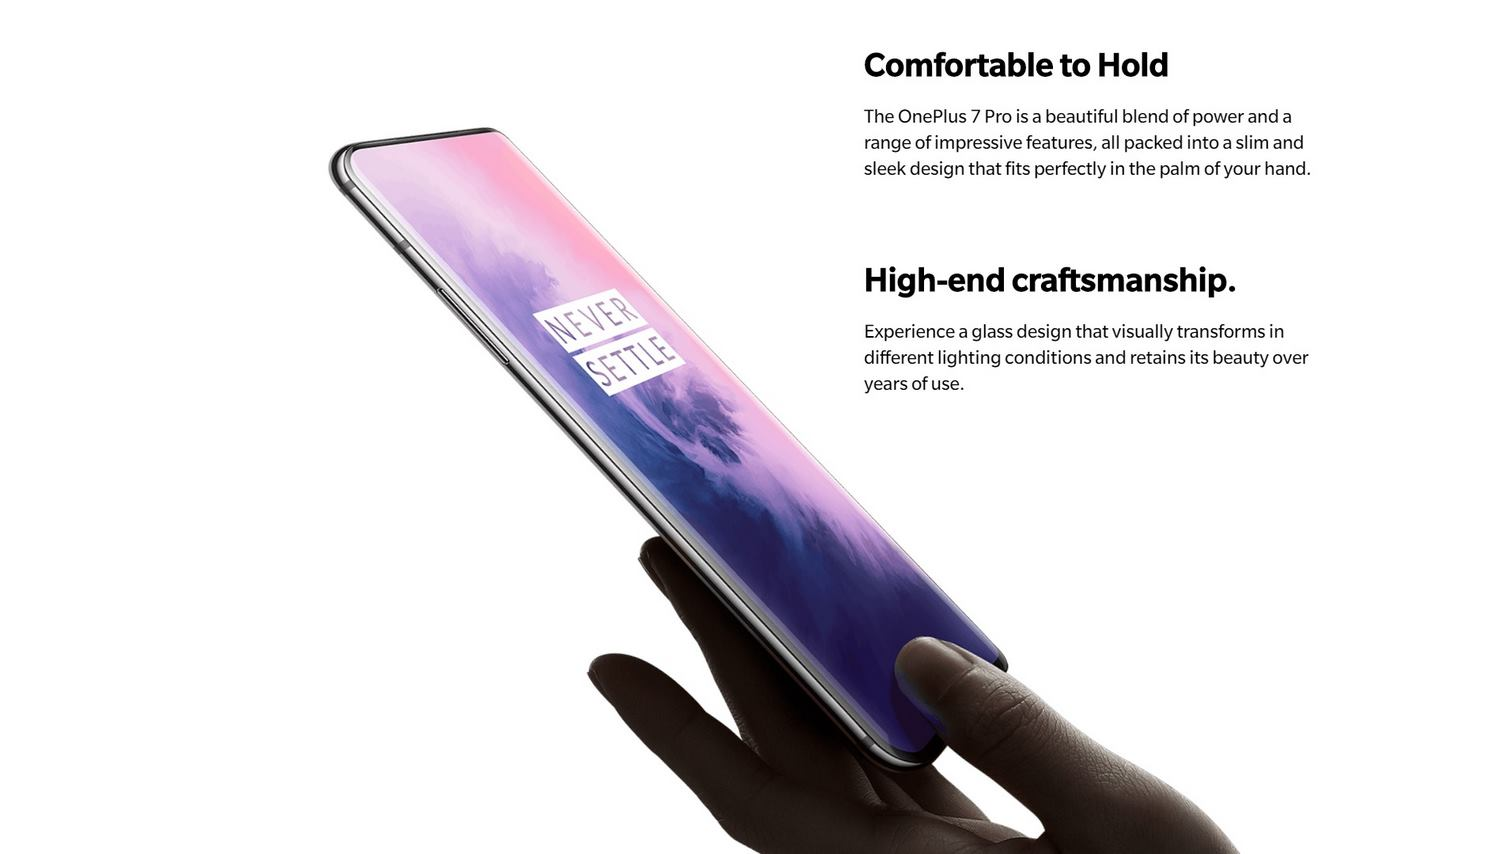 ONEPLUS 7 PRO BANNER - PREMIUM CRAFT & COMFORTABLE GRIP